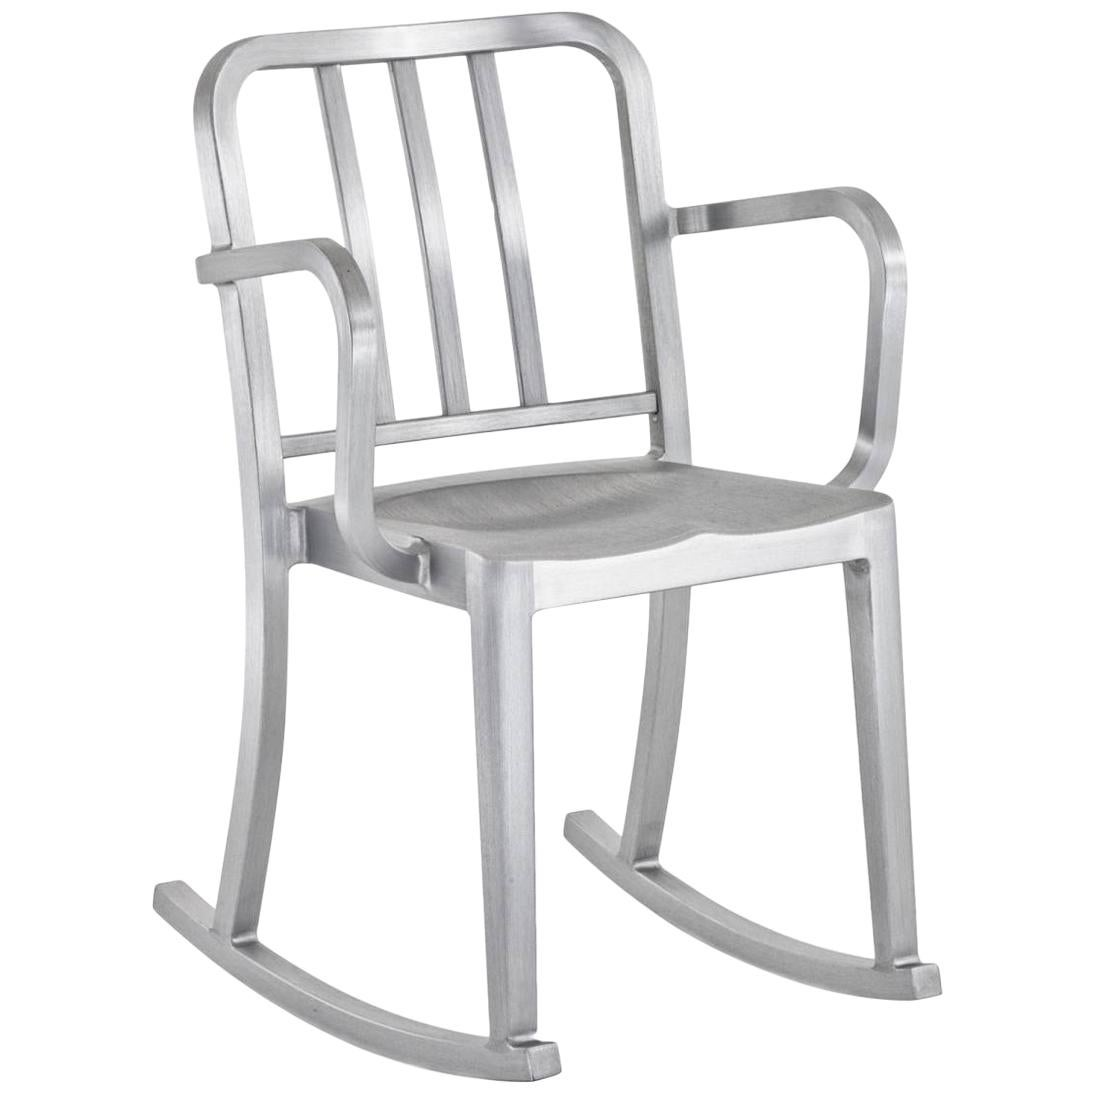 Emeco Heritage Rocking Armchair in Brushed Aluminum by Philippe Starck